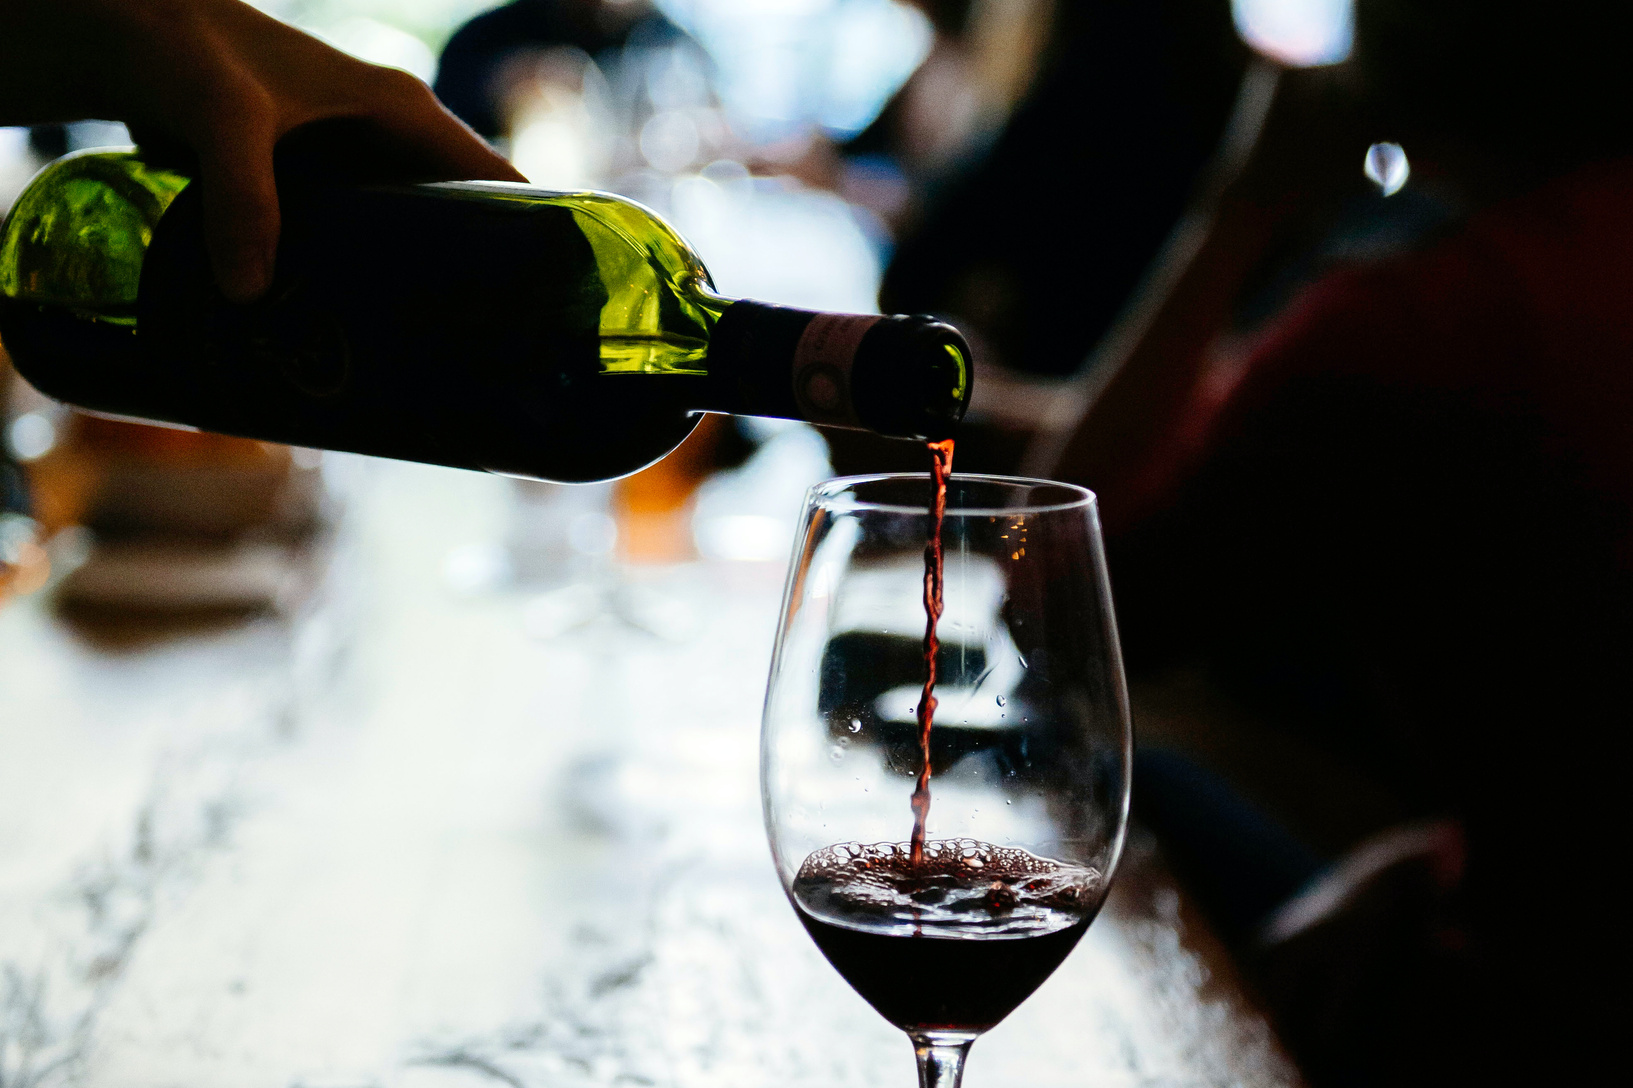 Enjoy local businesses including Eight Bells, one of Seattle's top urban wineries.